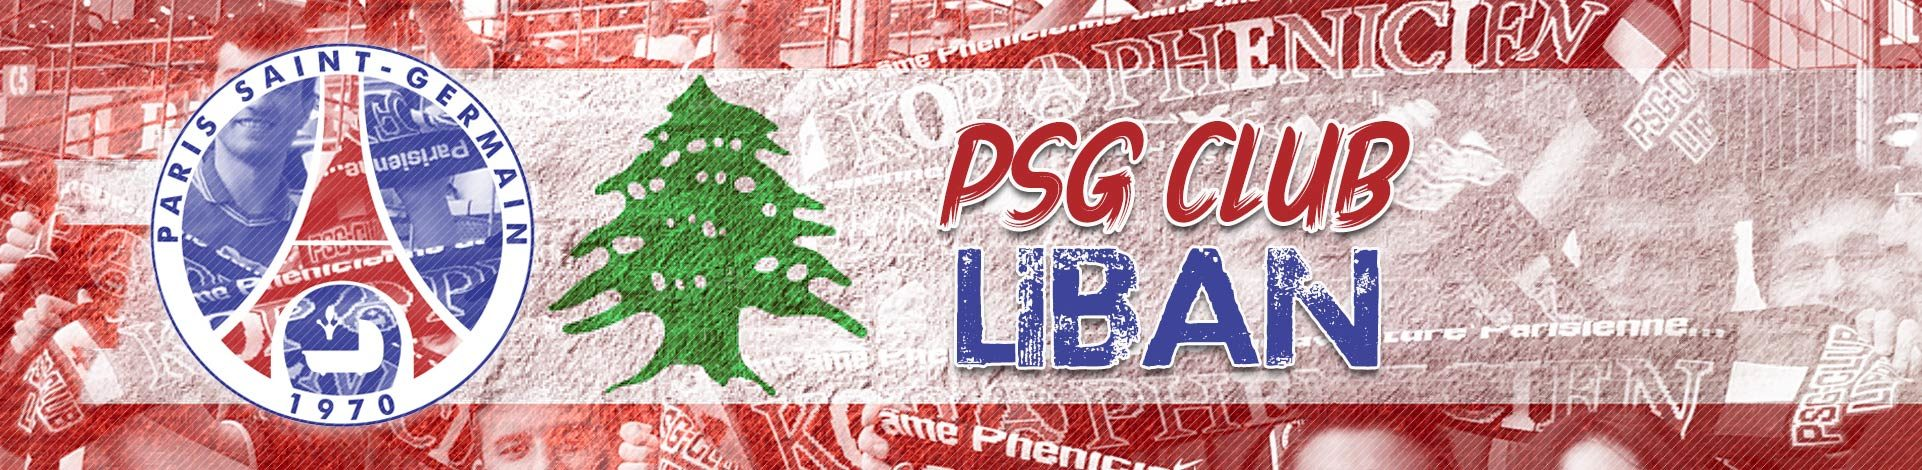 PSG Club Liban Virage